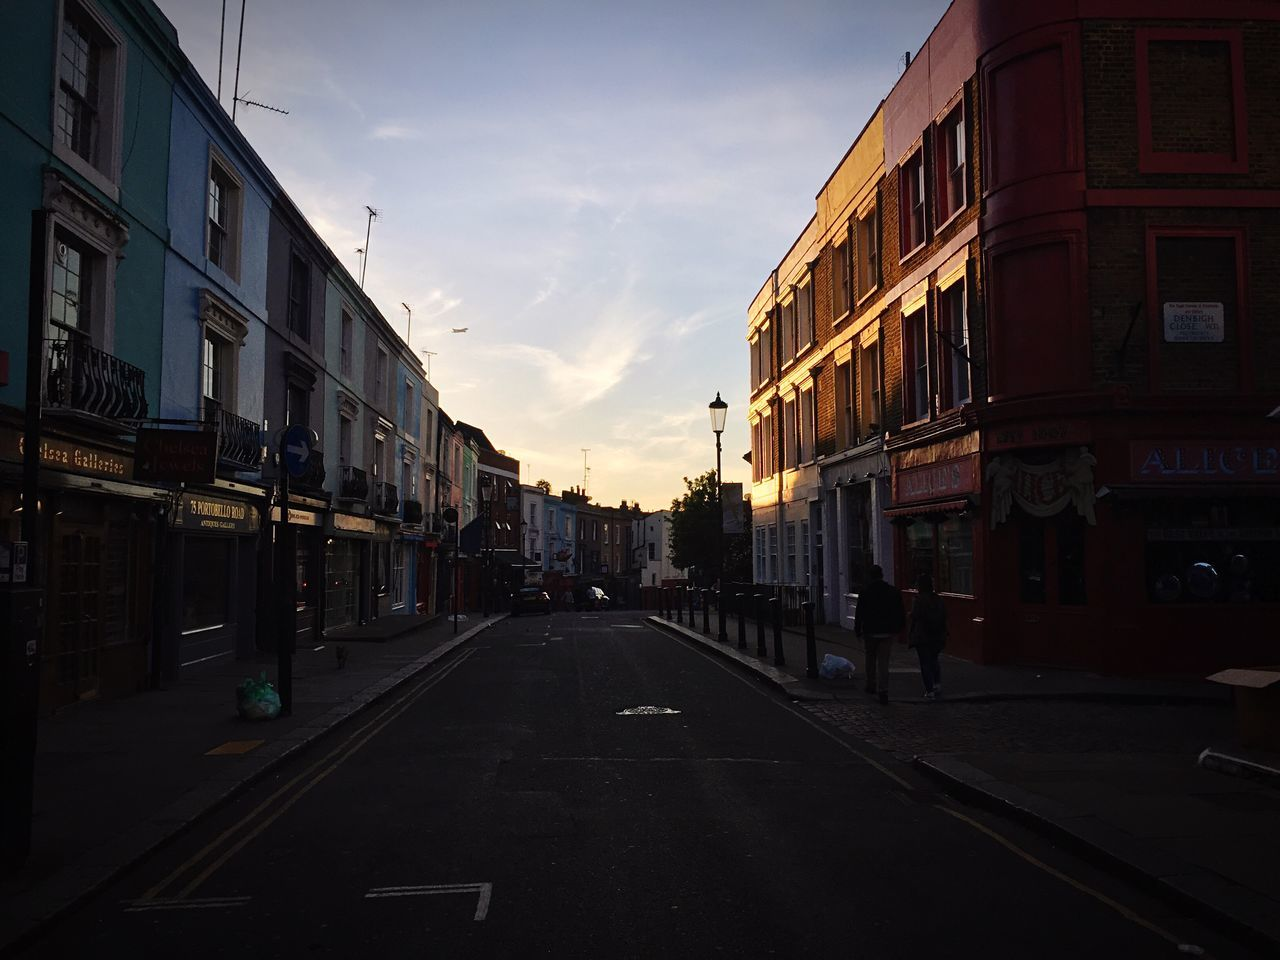 Evening Walk Building Exterior Architecture Built Structure Sky The Way Forward Street Cloud - Sky Outdoors Road No People City Sunset Day City